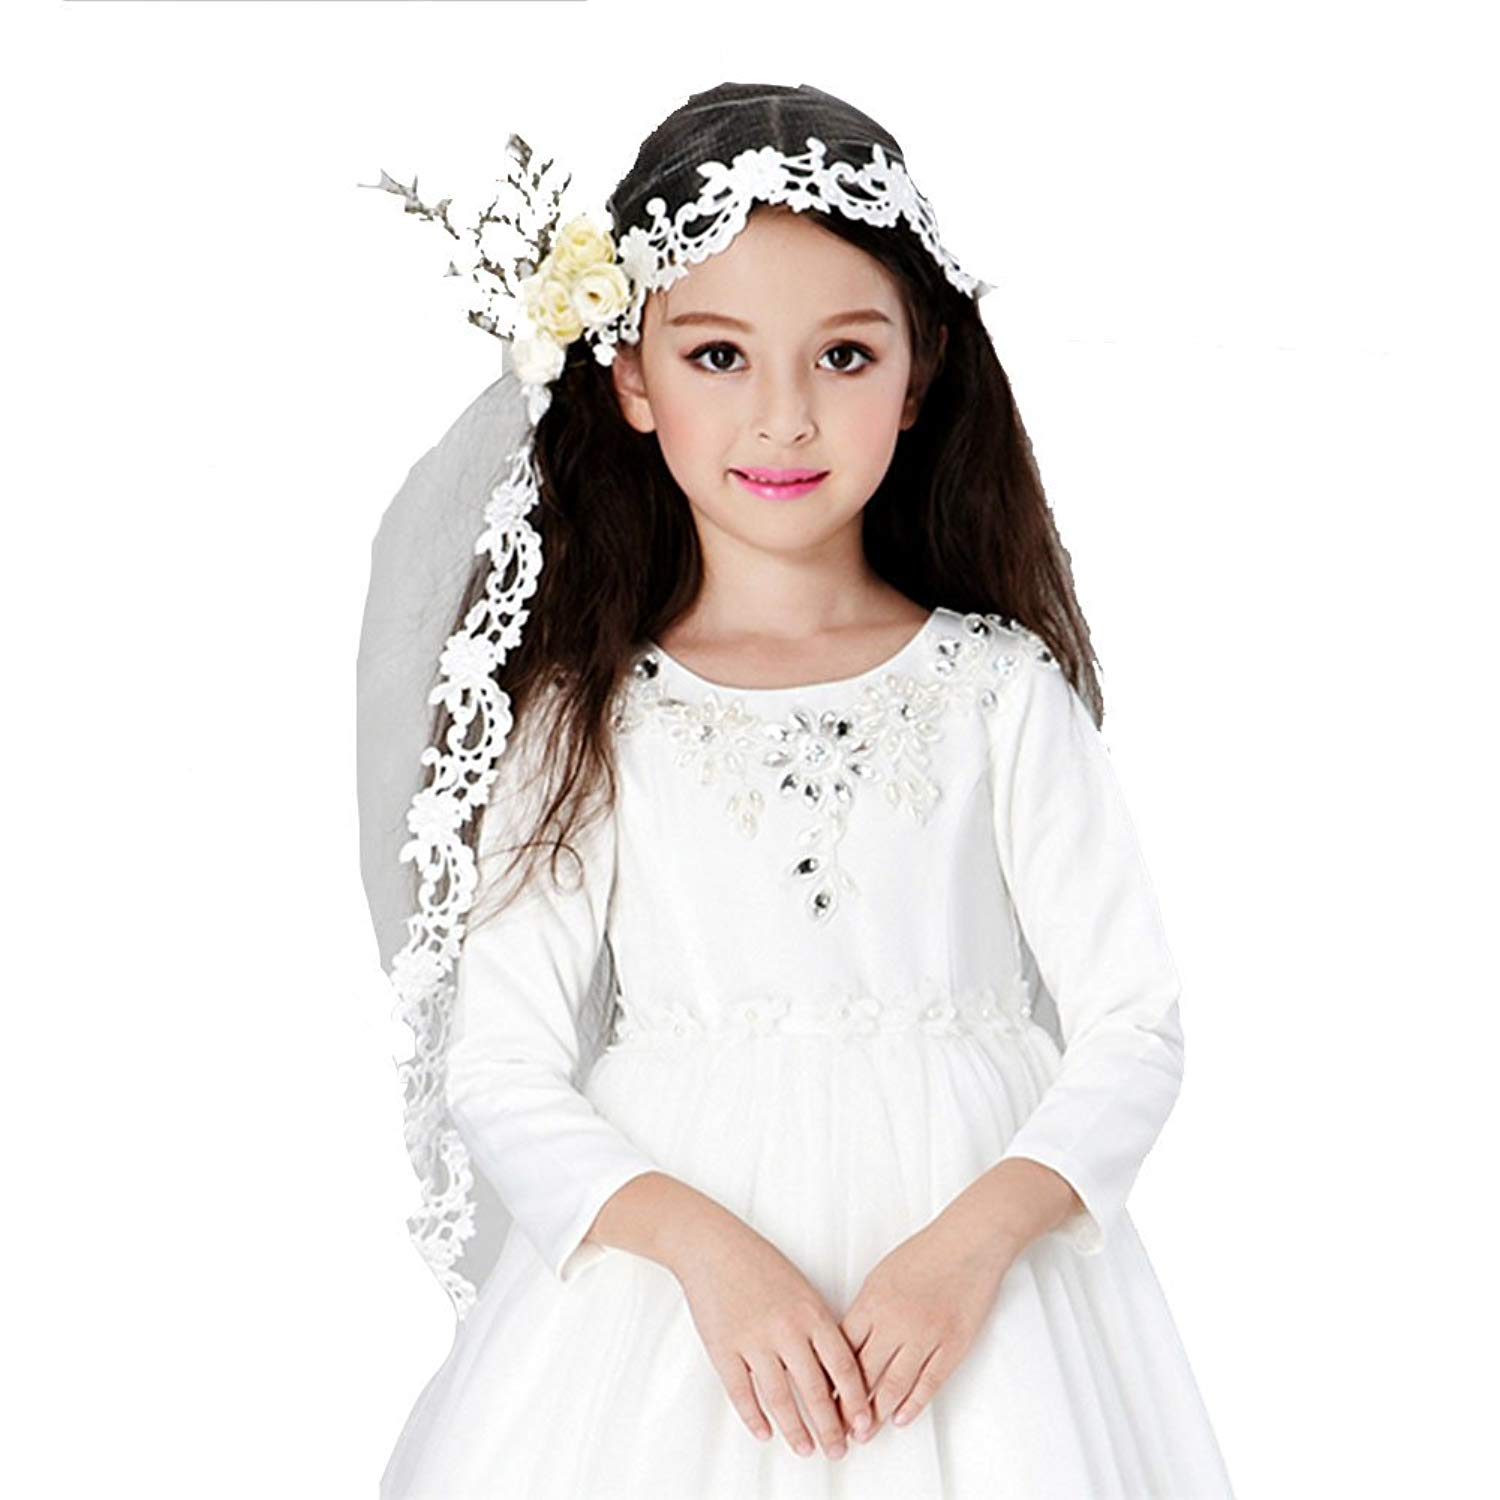 5b4be195ae Buy Communion Veil - First Communion Veils - Beaded Headband with ...